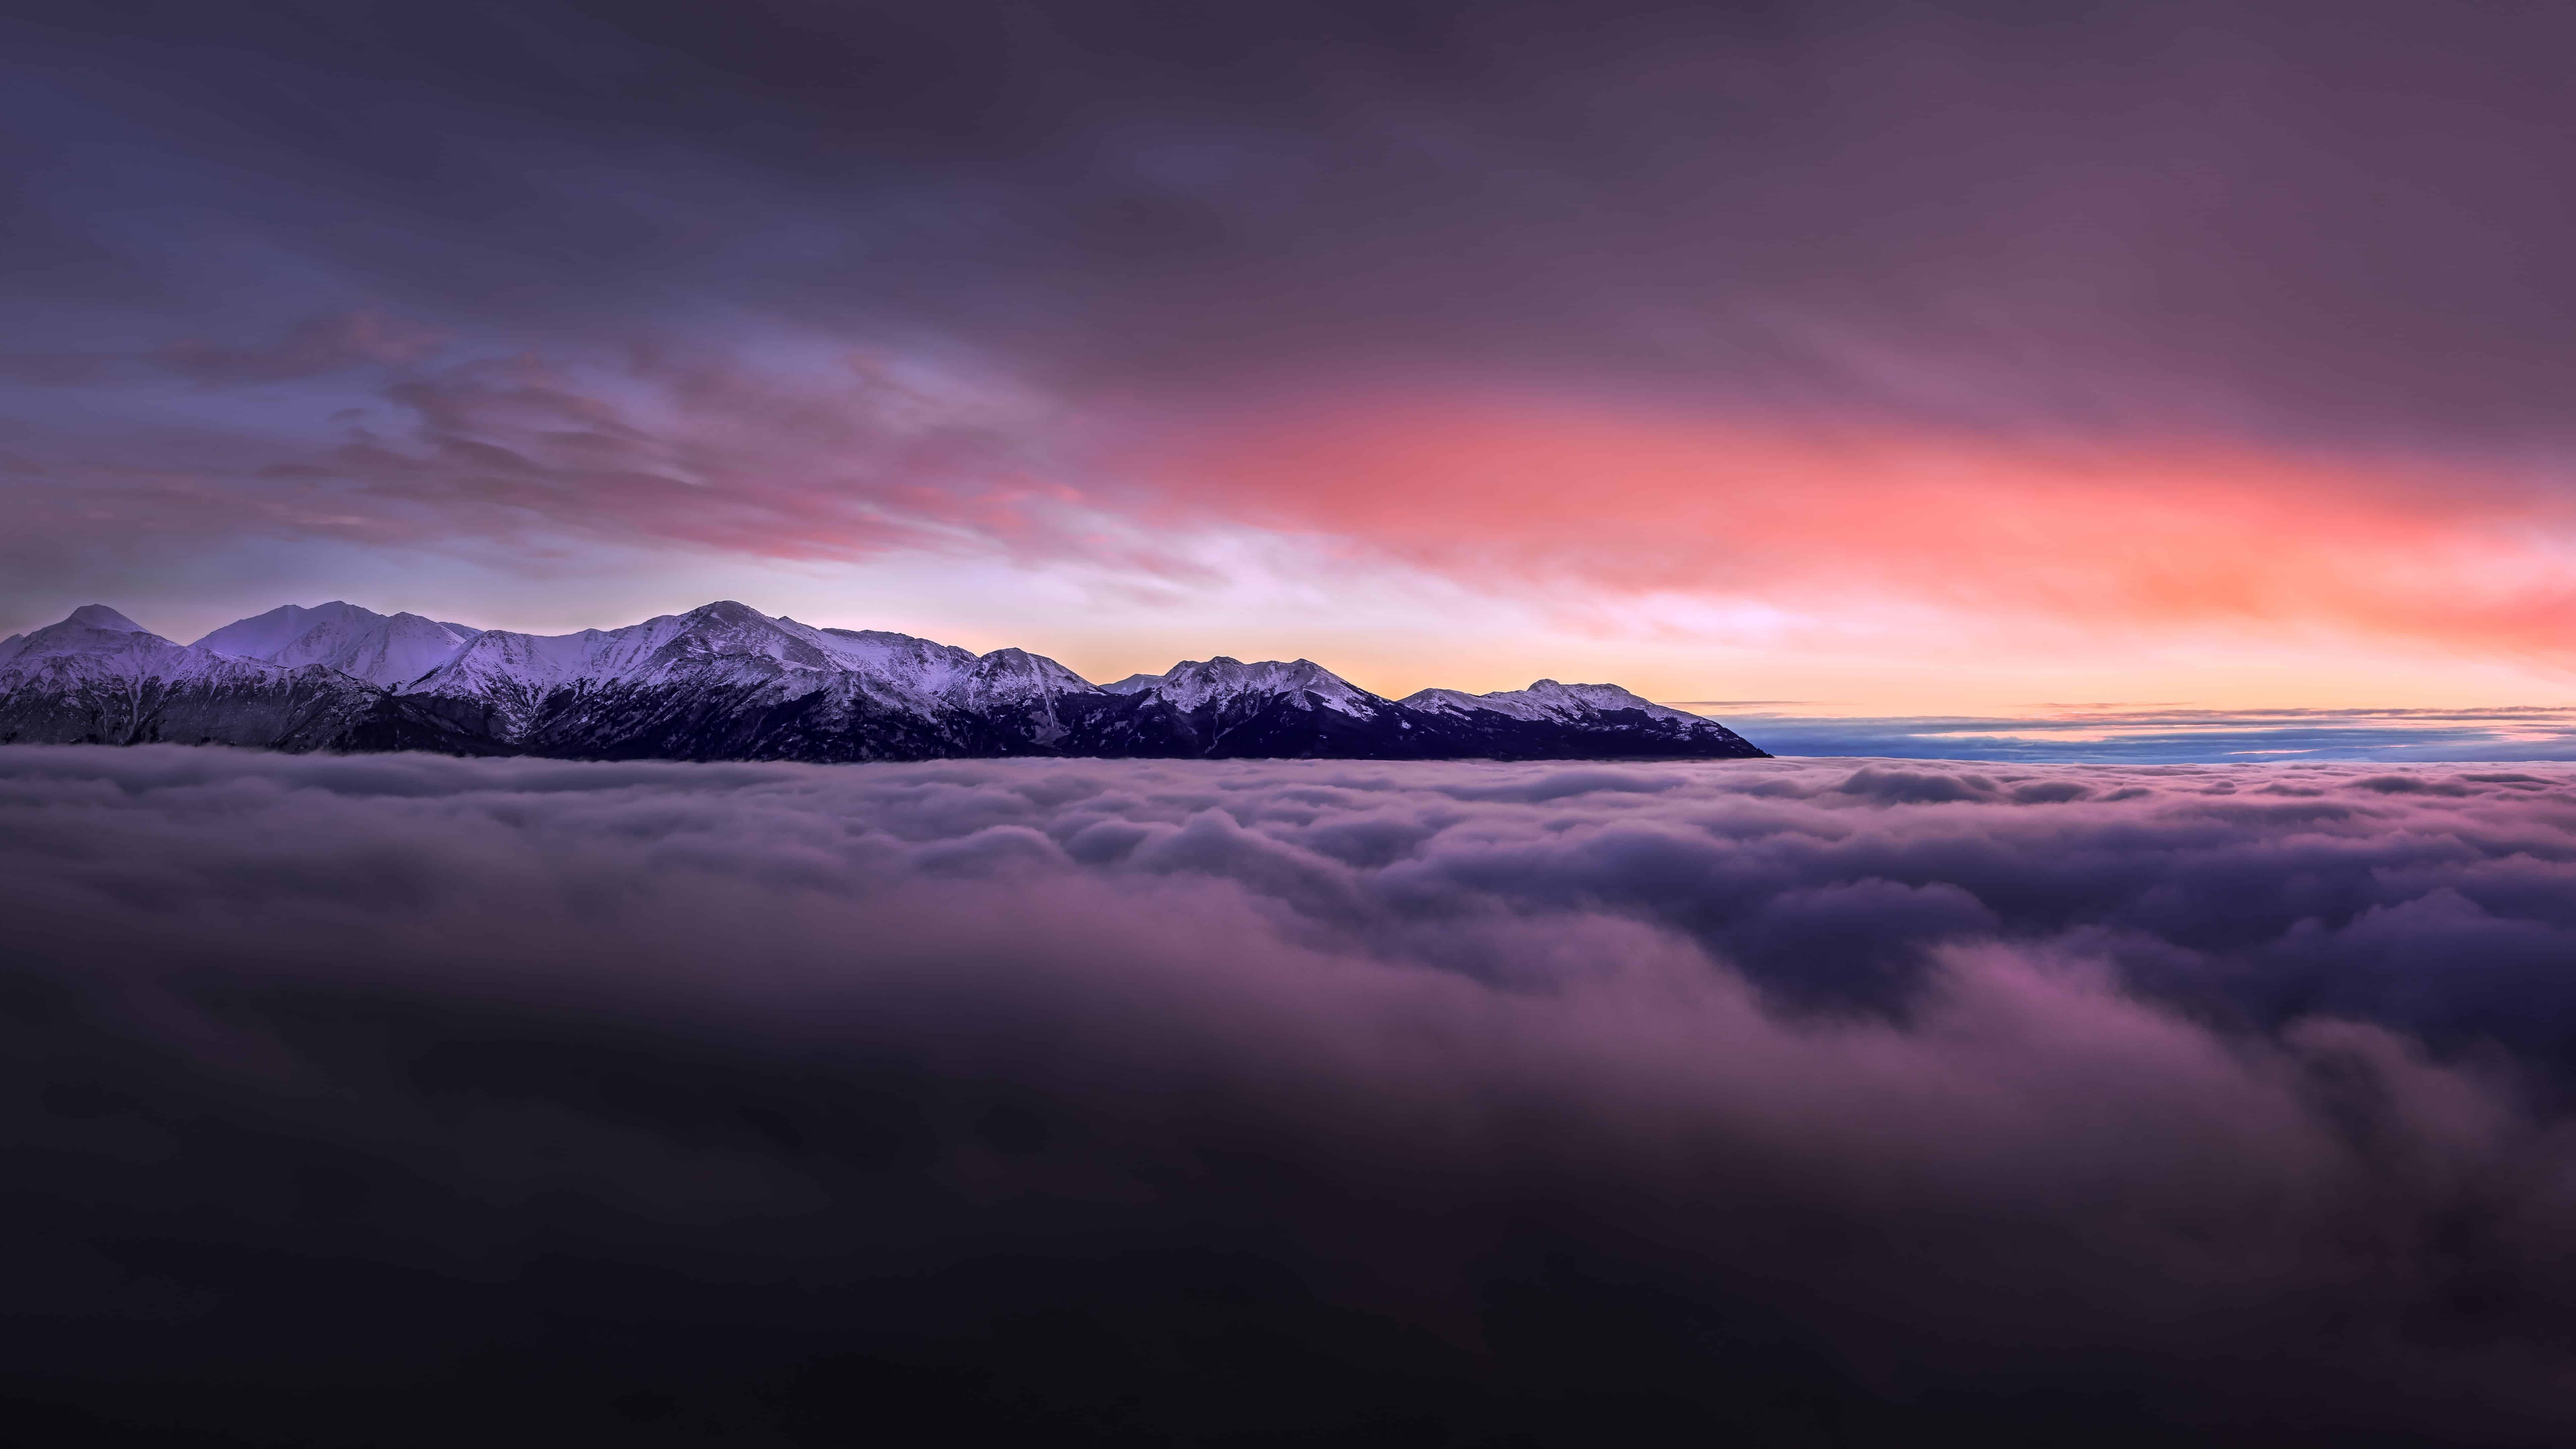 Sunset With Mountains Above Clouds Uhd 8k Wallpaper Pixelz